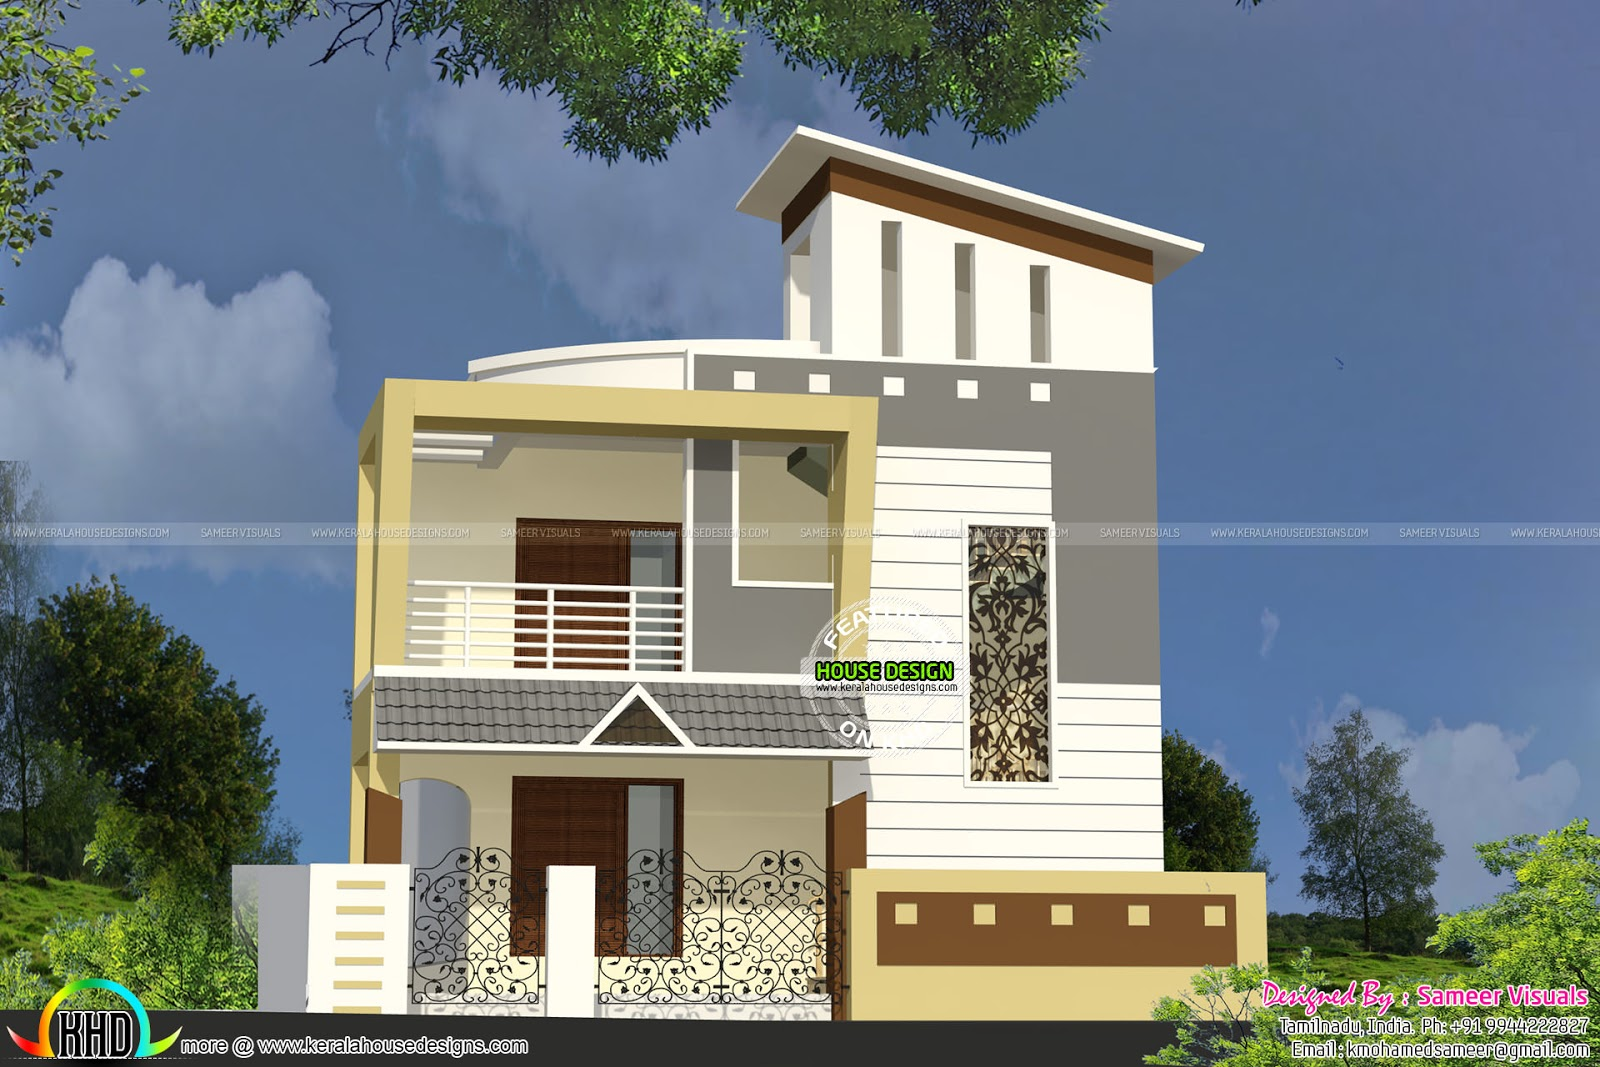 Double floor small home kerala home design and floor plans for Home design double floor